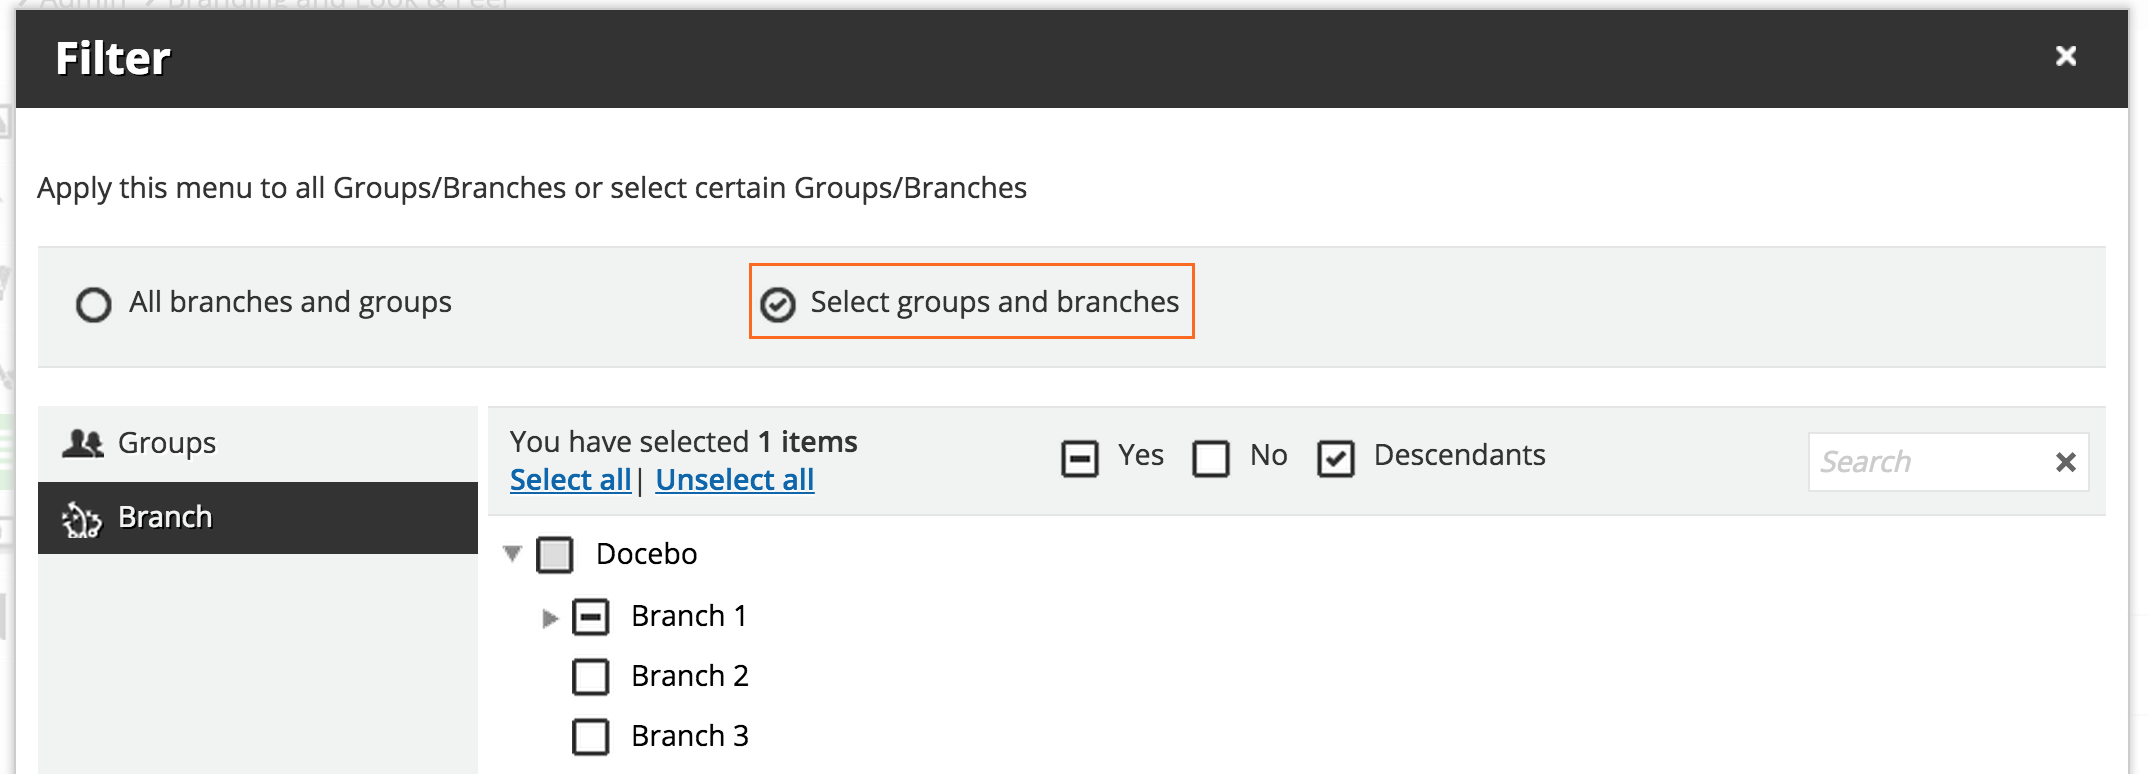 branding Select groups and branches